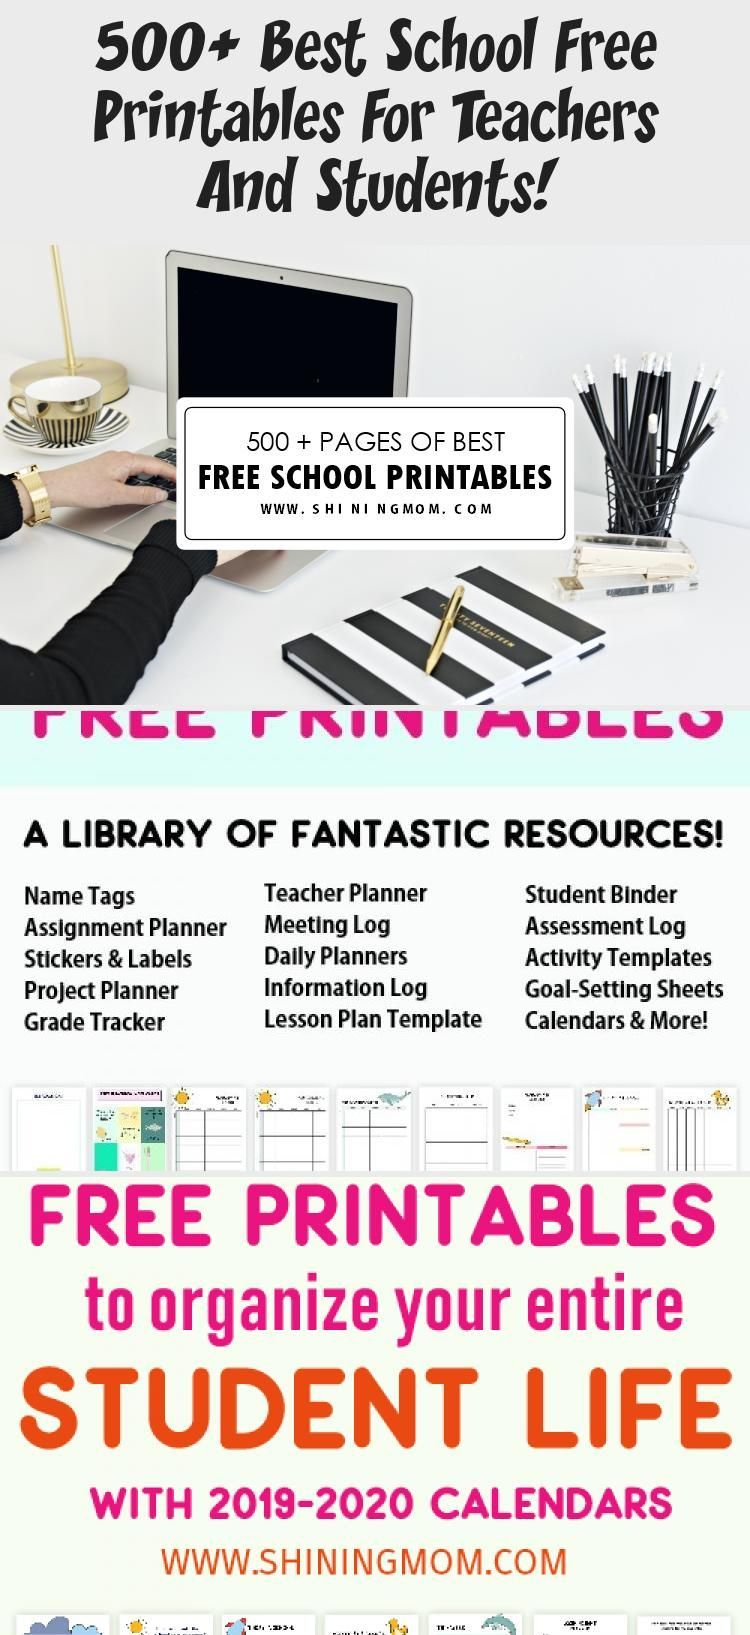 500+ Best School Free Printables For Teachers And Students! #teacherplannerfree Stay on top of everything in school with this vast list of free school printables.  Snag student binders, teacher planners, school stickers and labels, back-to-school organizers, school calendars, teacher quotes and posters, and more- all for free download. #school #studentbinder #teacher #freeprintables #shiningmomprintables #diyschoolorganizationIdeas #diyschoolorganizationLocker #diyschoolorganizationBackpacks #di #teacherplannerfree